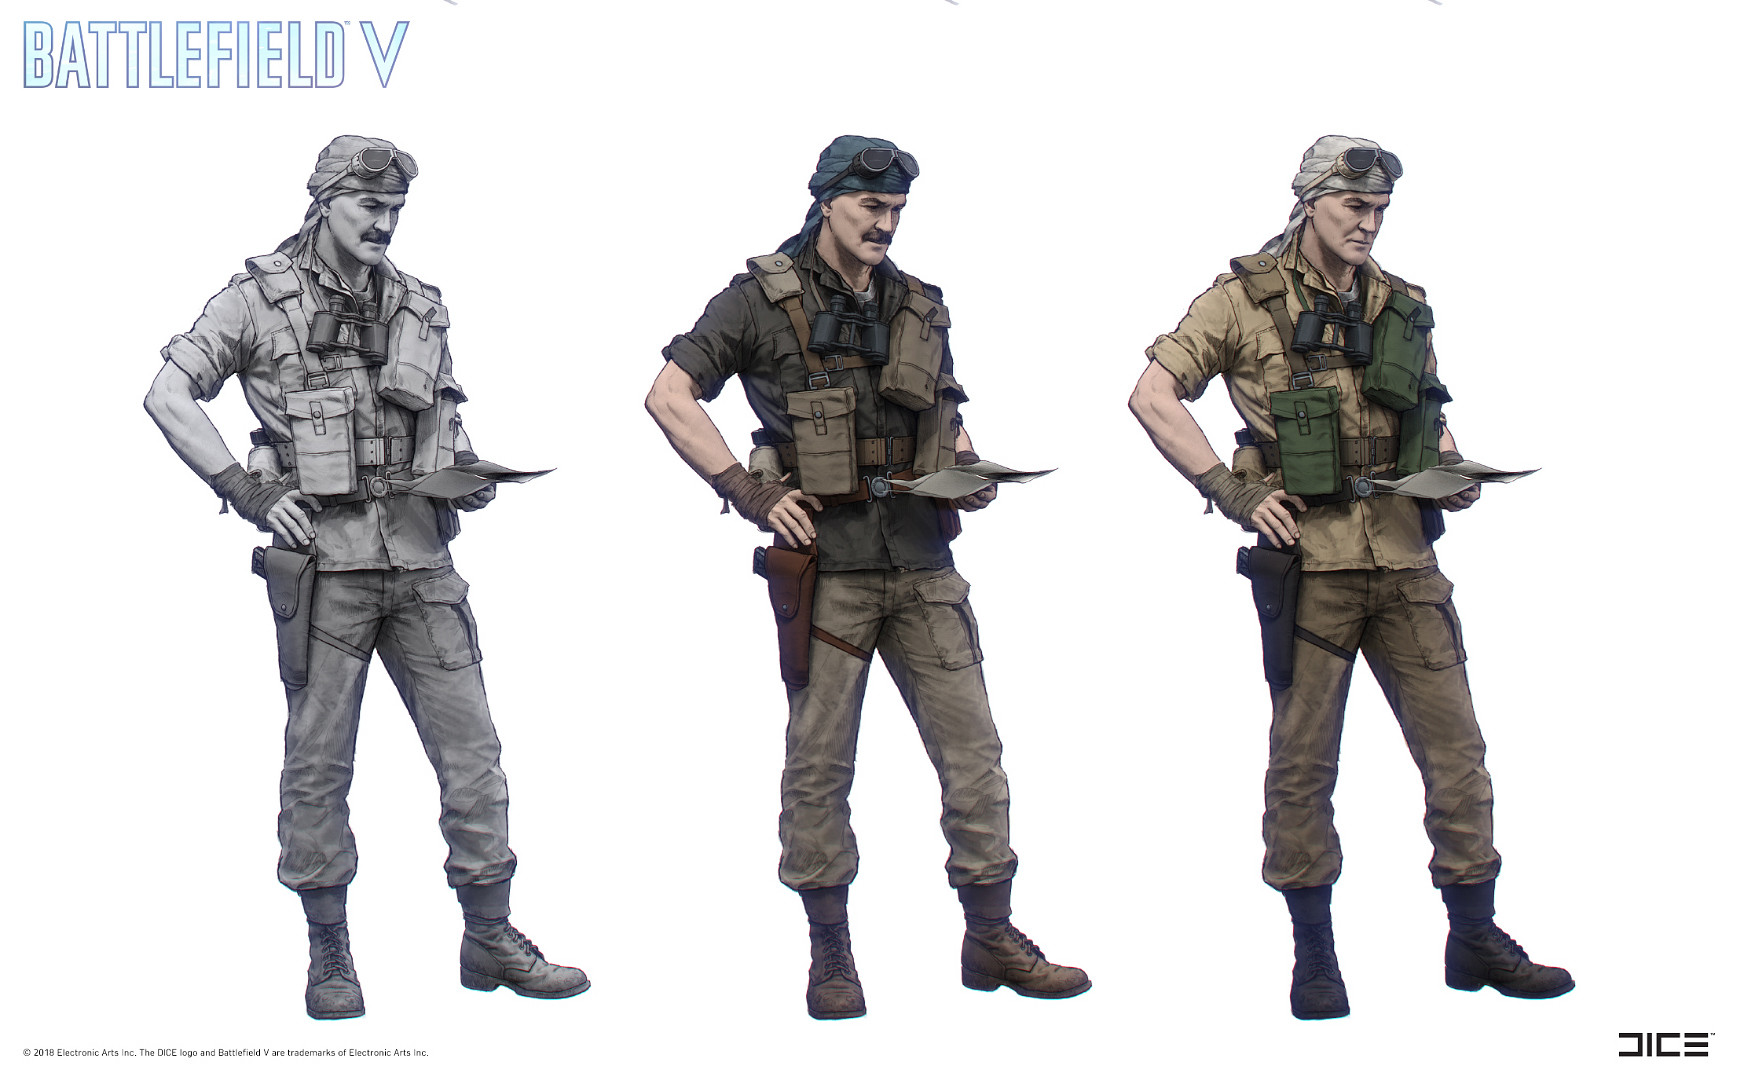 """Battlefield V"" - Under No Flag, Mason - Character concept art"